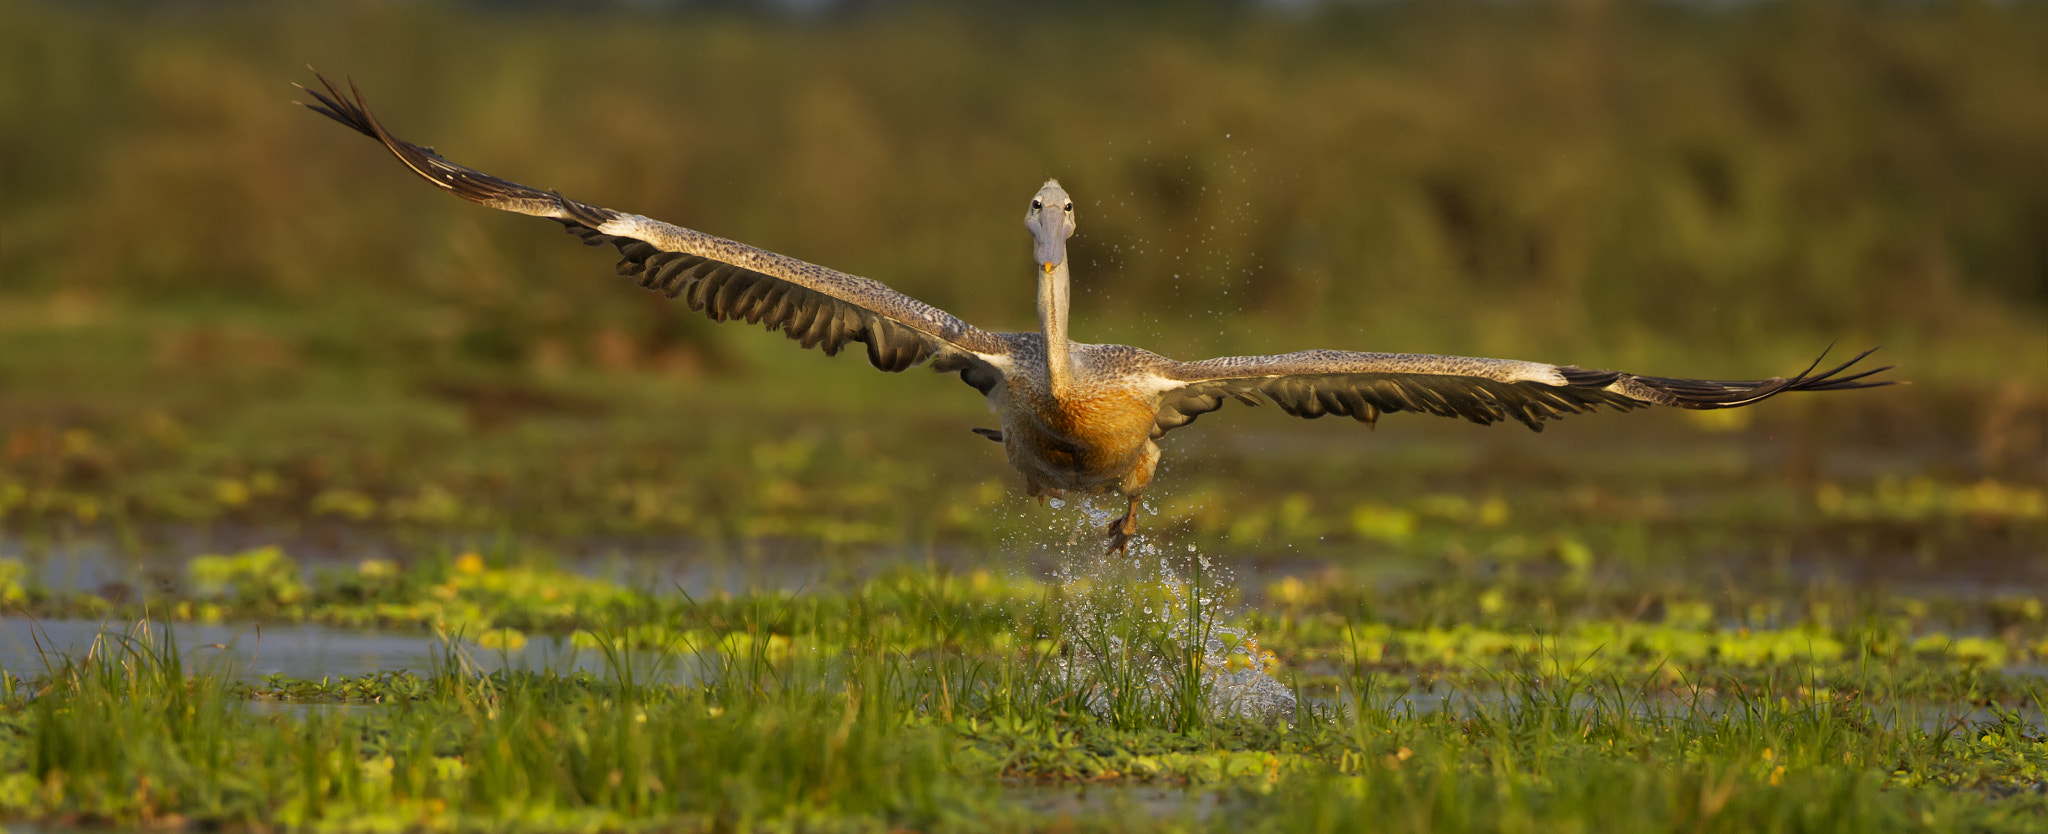 Photograph Take Off by Ken Watkins on 500px